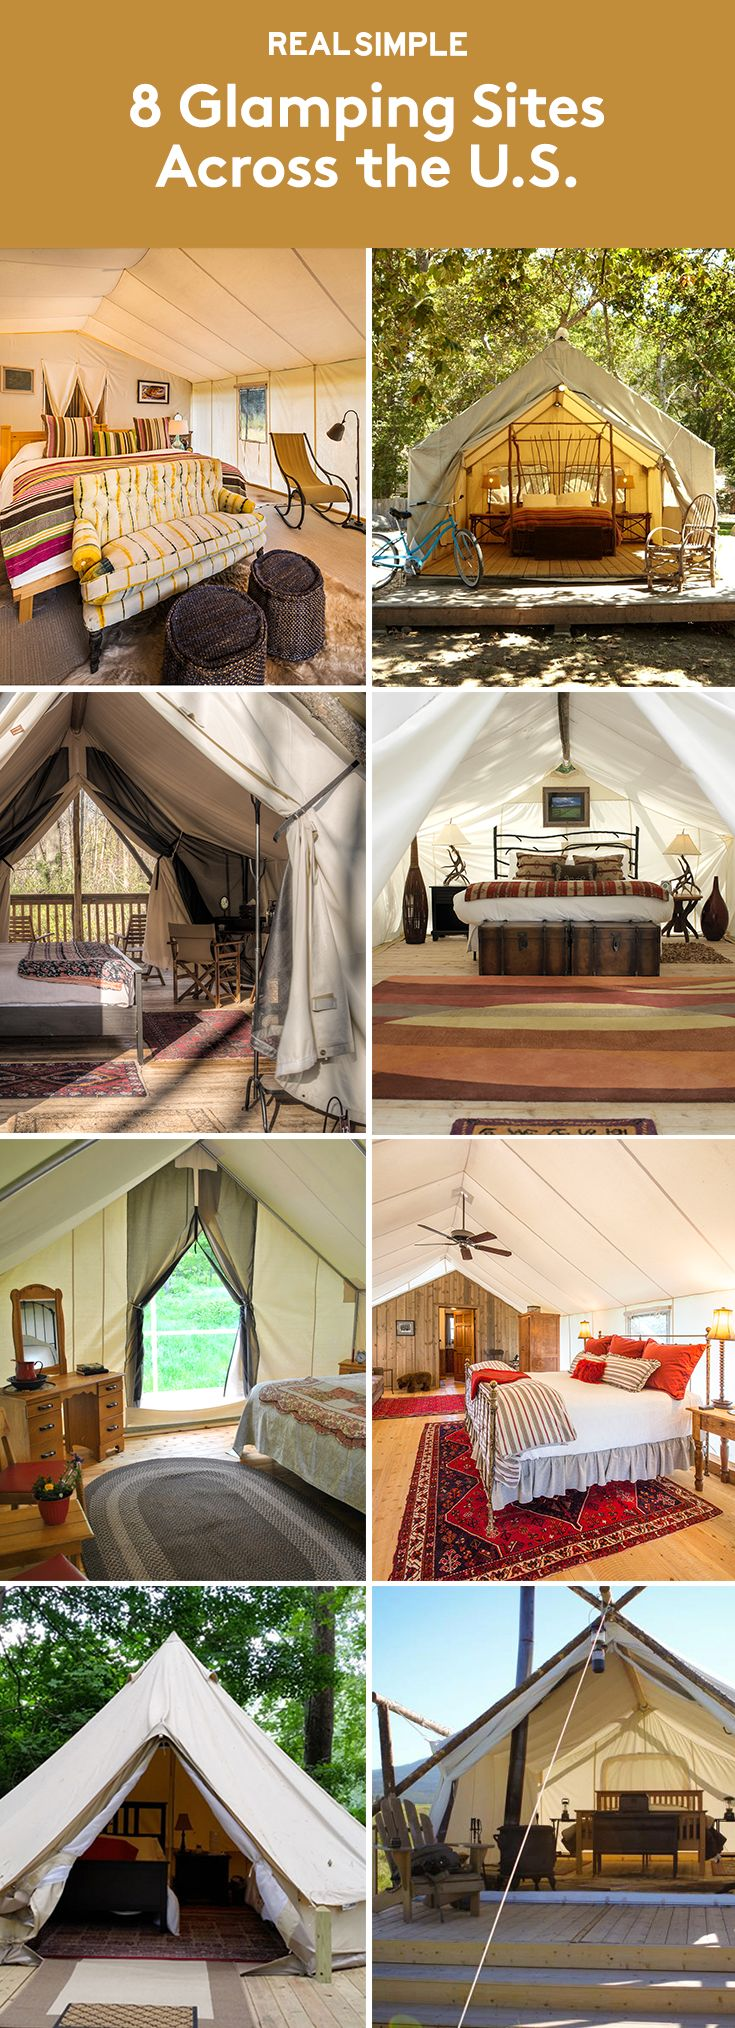 "8 Glamping Sites Across the U.S. | If you think you're not made for ""roughing it"" in nature—well, you don't have to. Glamping (glamorous camping) combines the great outdoors with the high-end amenities to make for a comfortable and unforgettable vacation. Take a look at these spots to add to your bucket list."